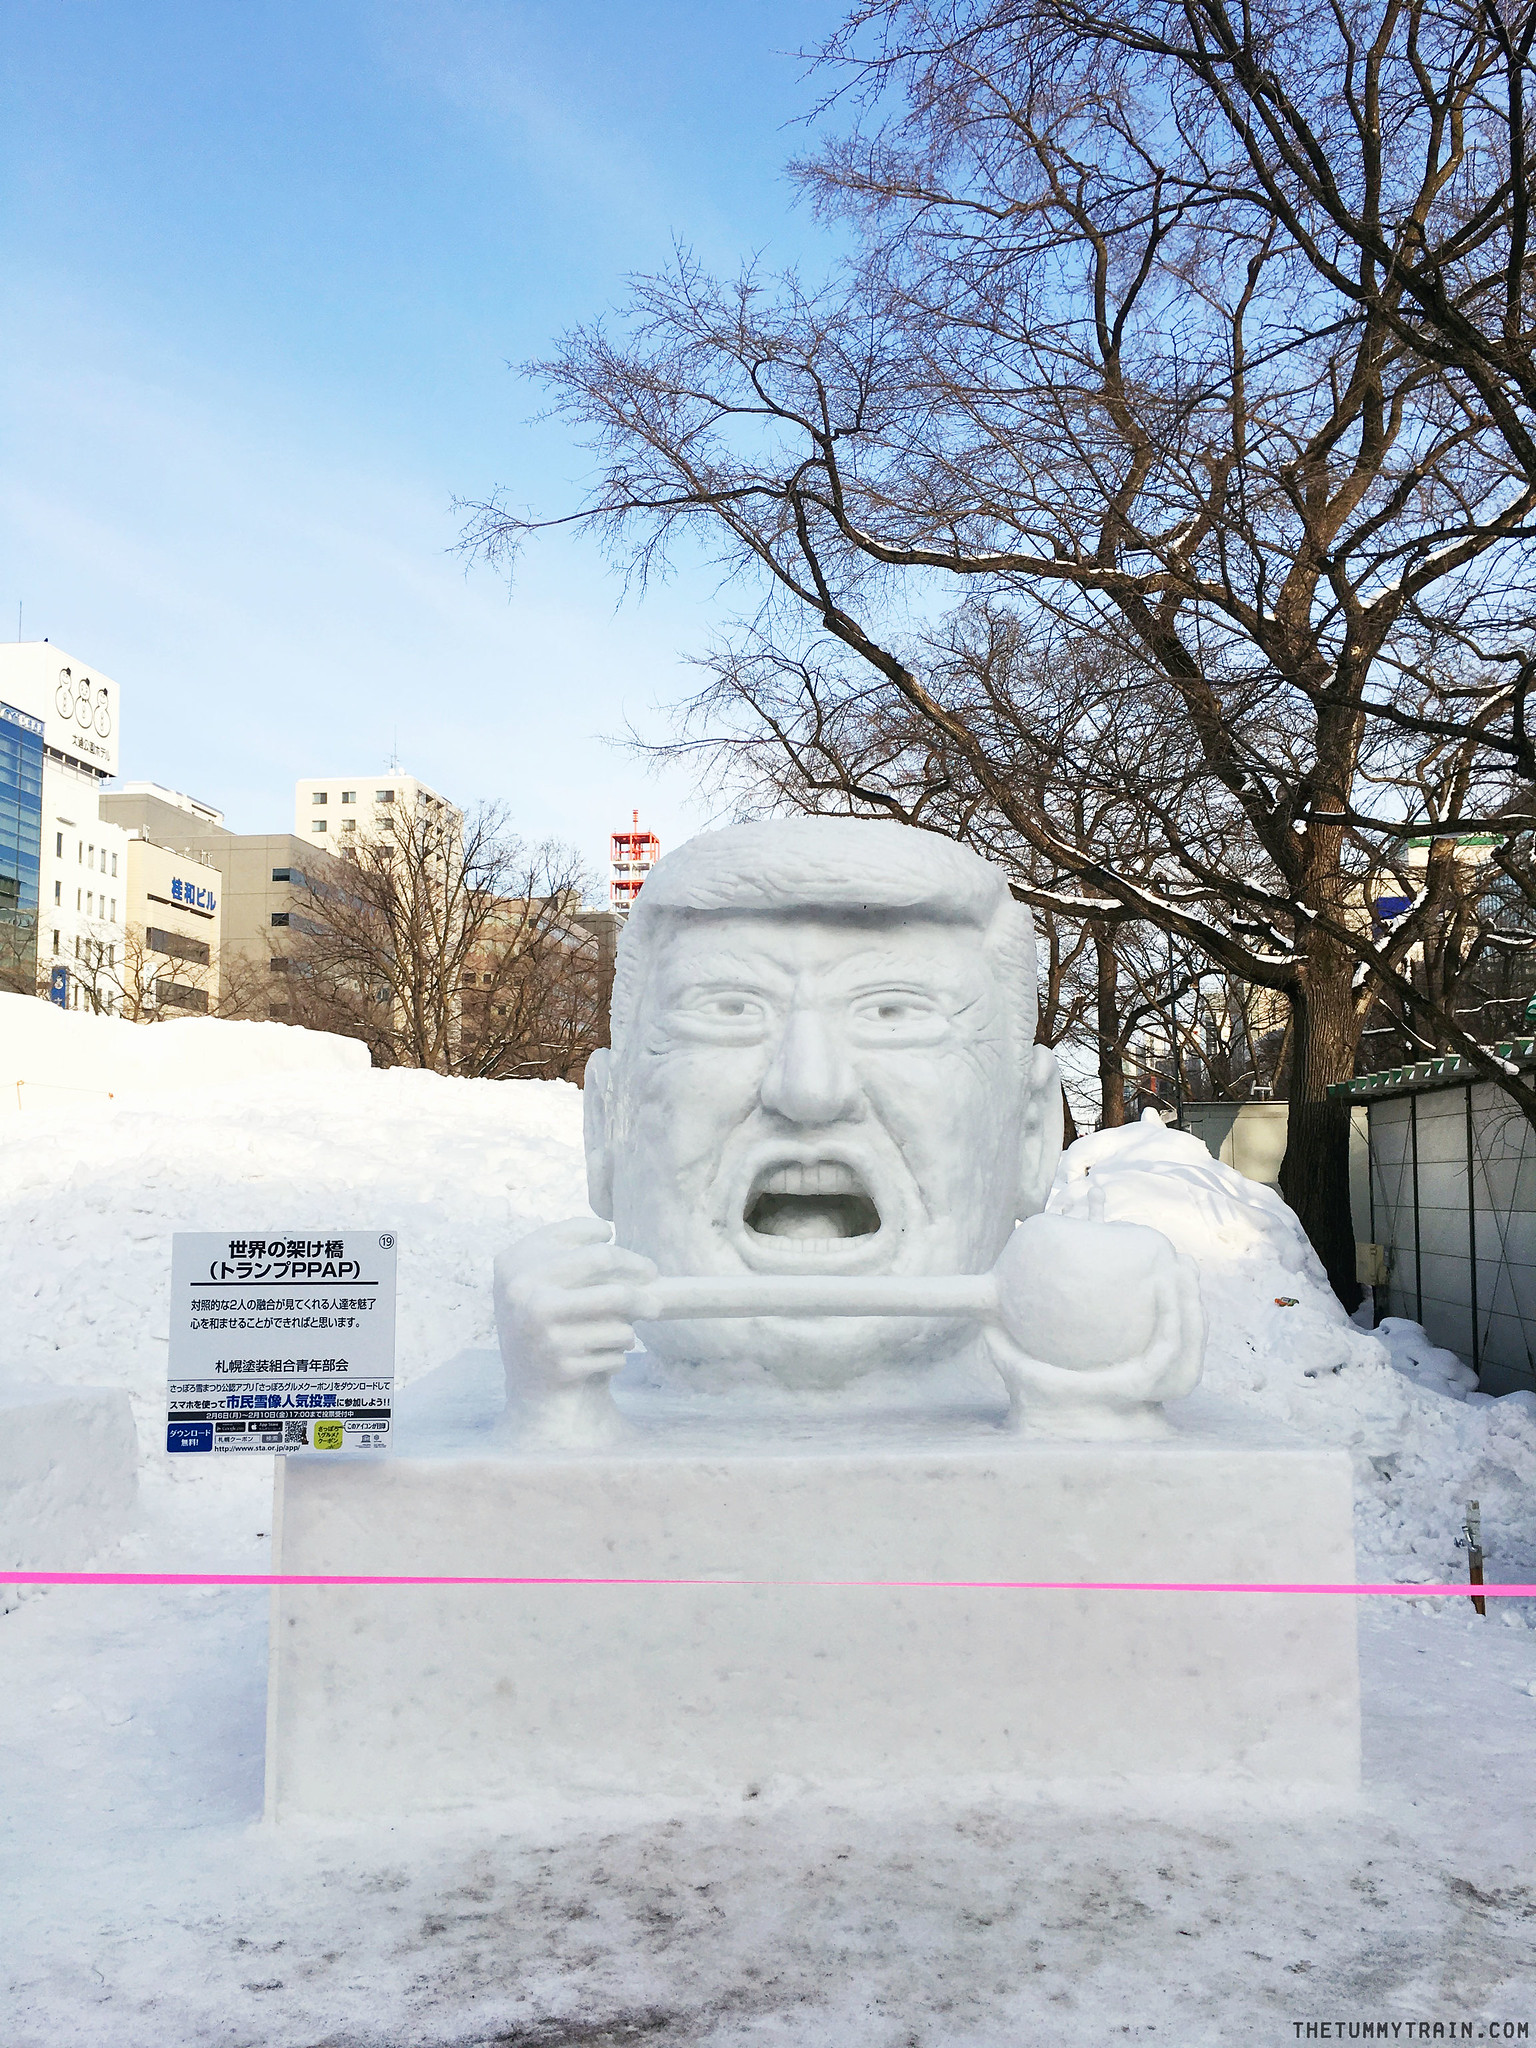 32537262810 19a08f4189 k - Sights, Sounds, and Smells at the 68th Sapporo Snow Festival at Odori Park